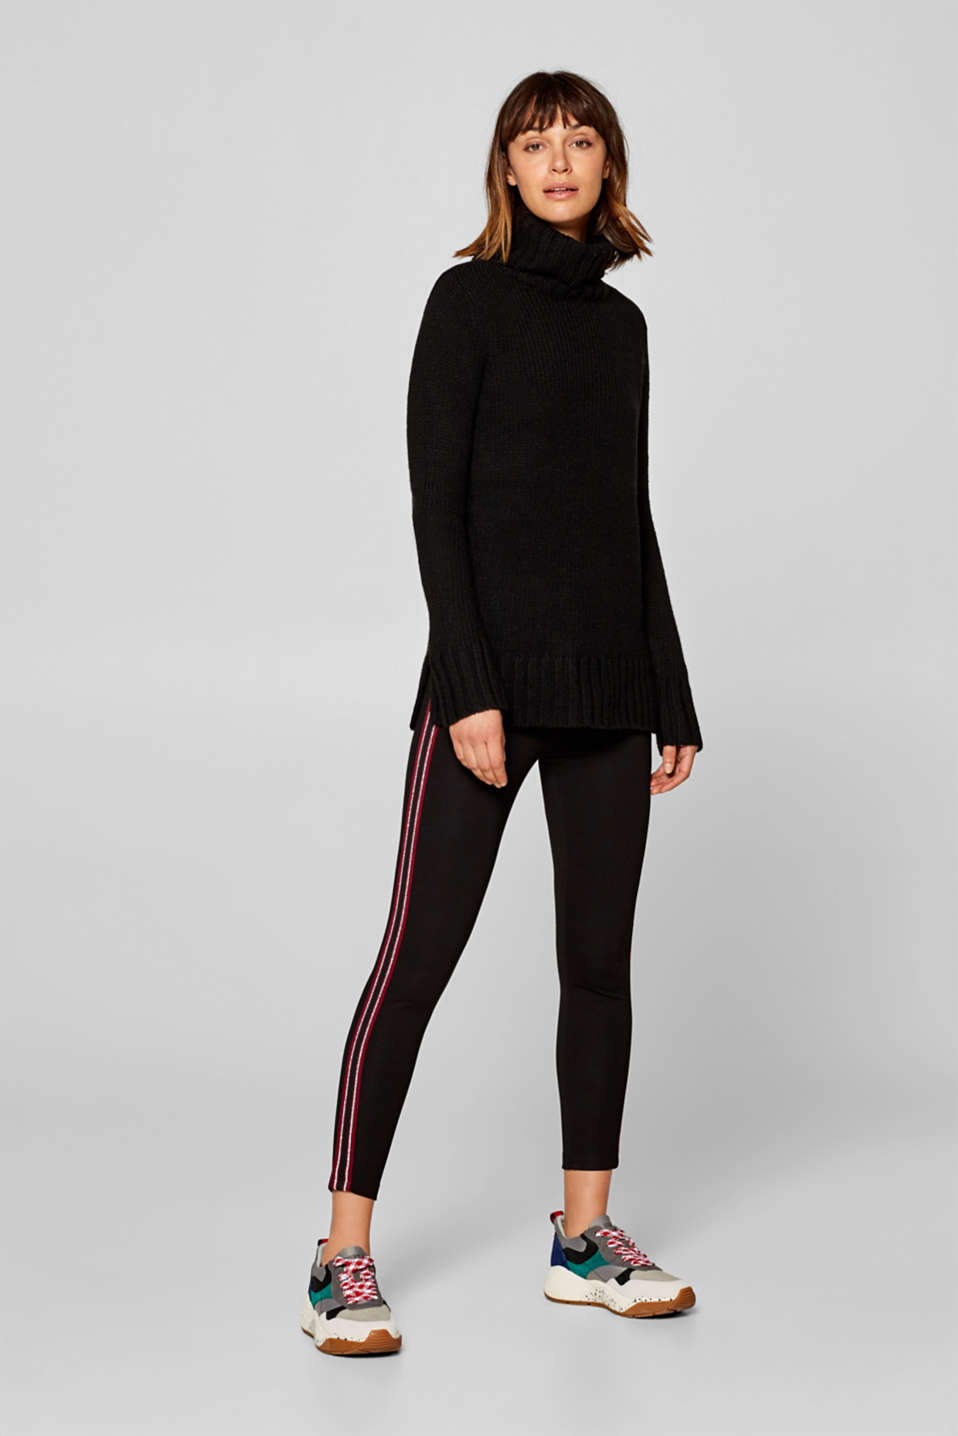 Esprit - 7/8 leggings with glittery tuxedo stripes